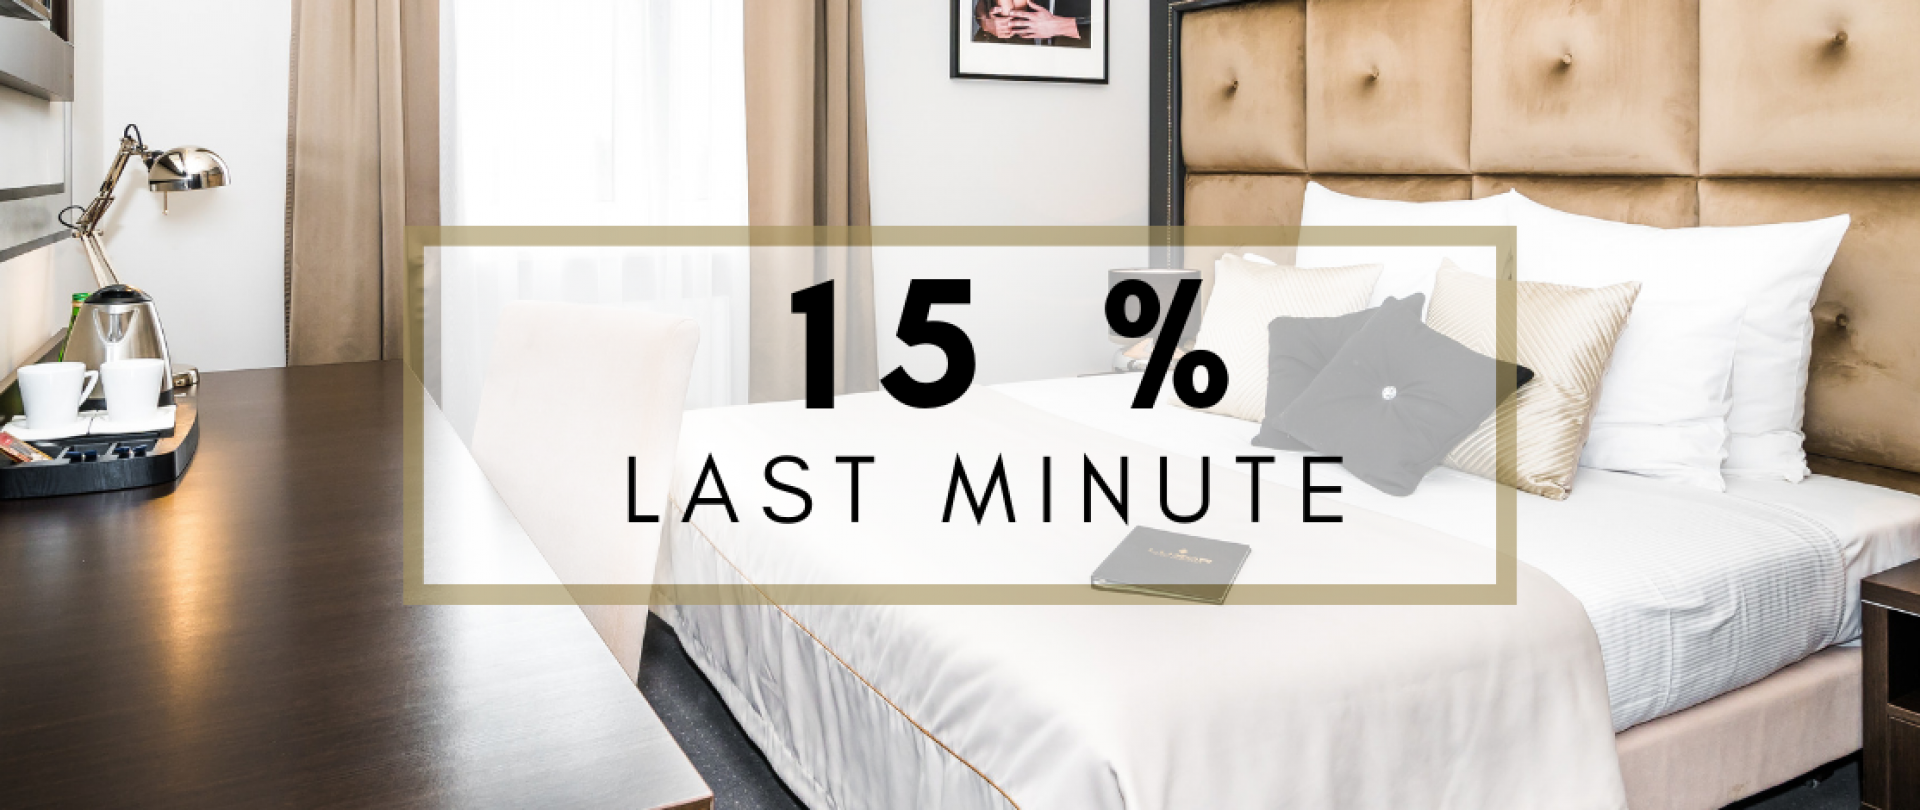 Last Minute offer room and breakfast -15%